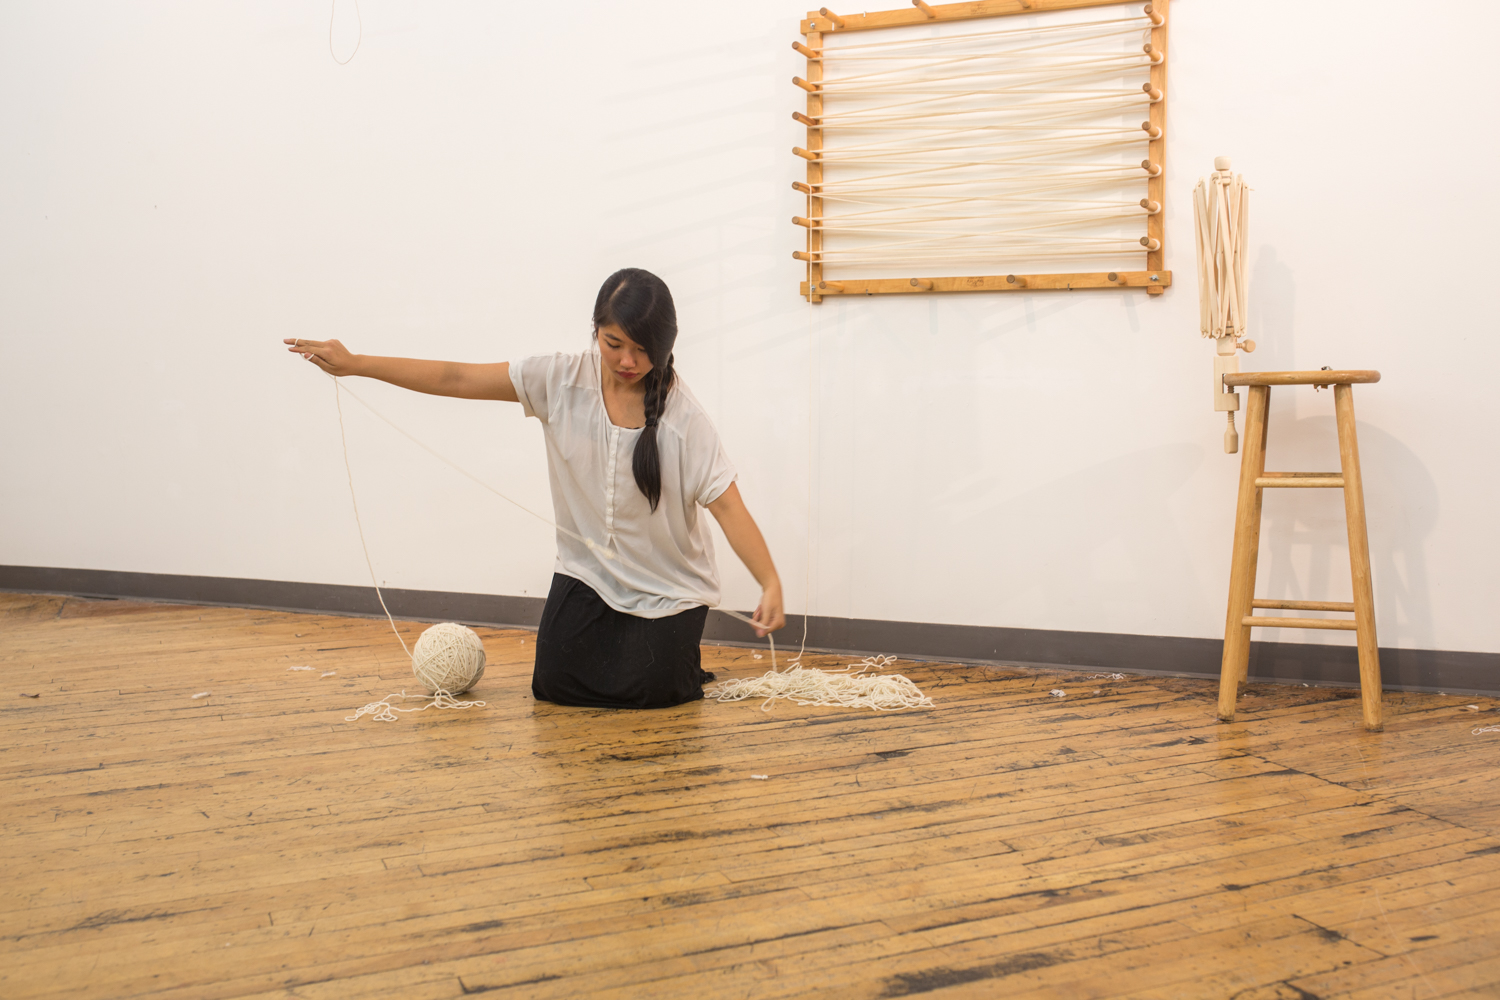 The artist focuses on untangling a knot.